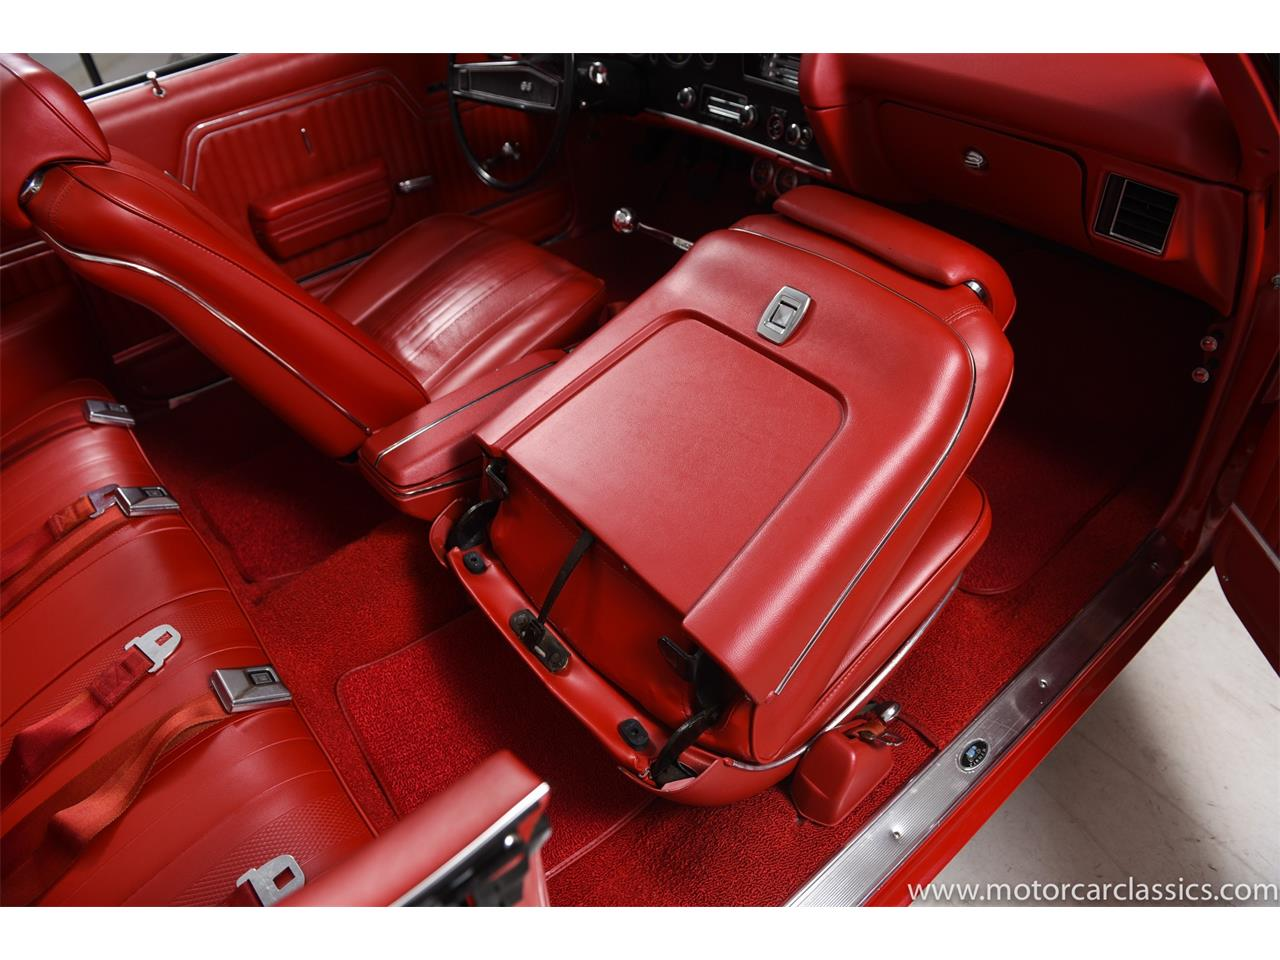 1970 Chevrolet Chevelle for sale in Farmingdale, NY – photo 29